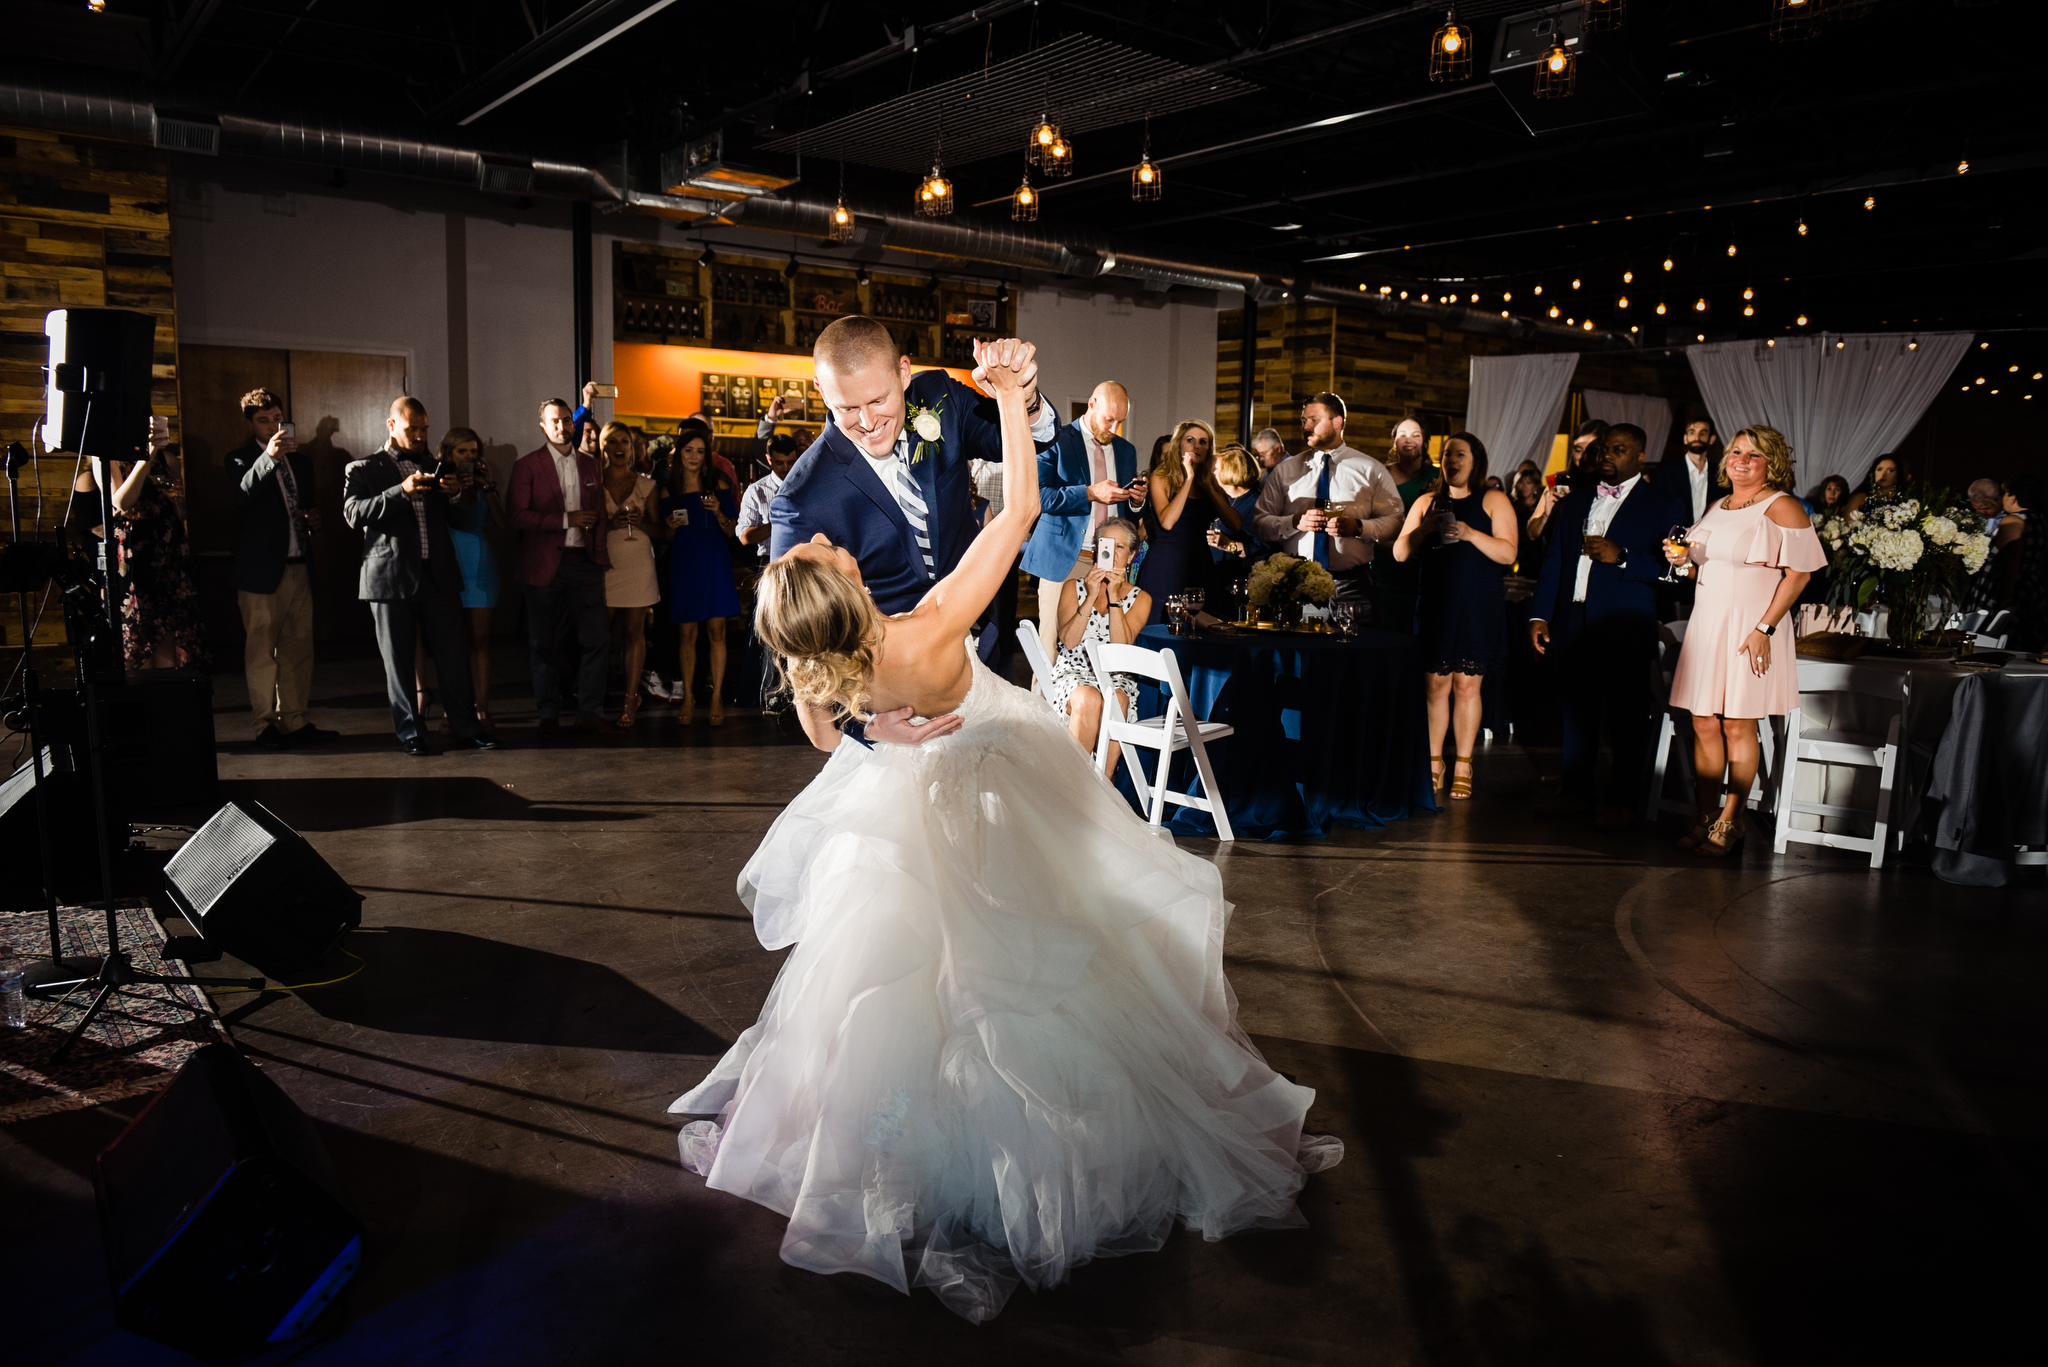 Triple C Barrel Room Wedding first dance.jpg